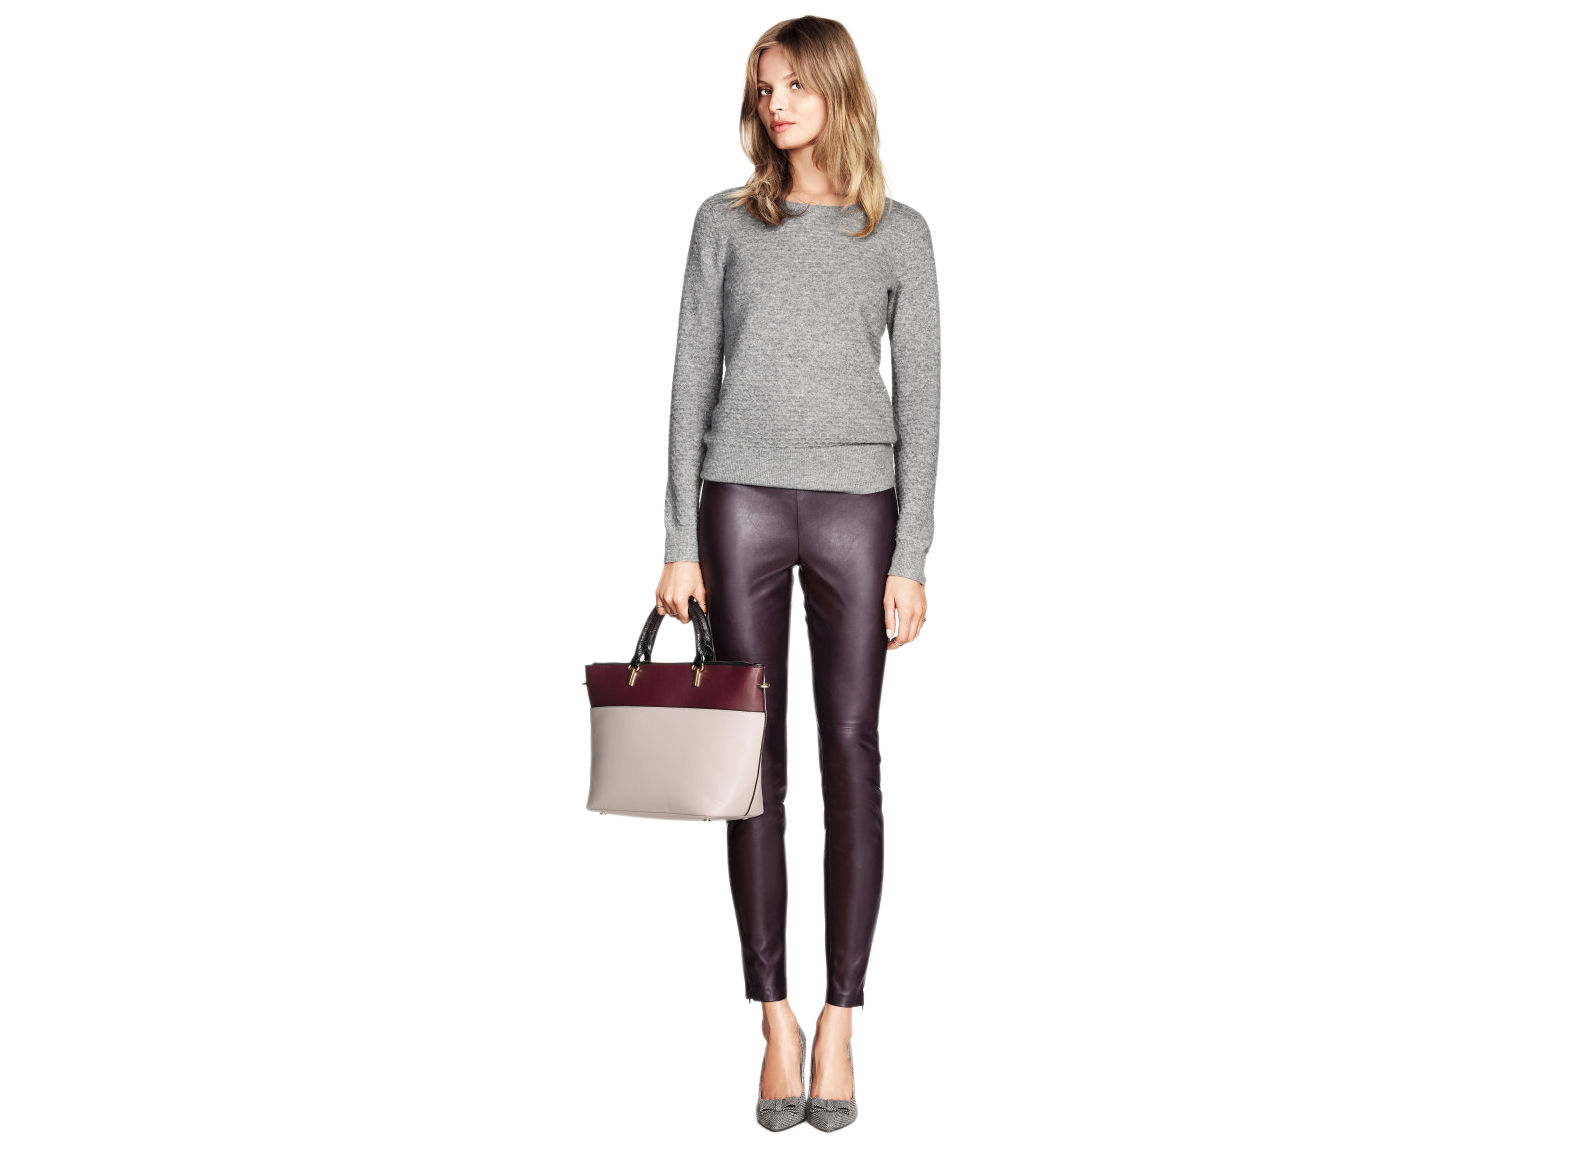 H&M Imitation Leather Pants in Dark Purple